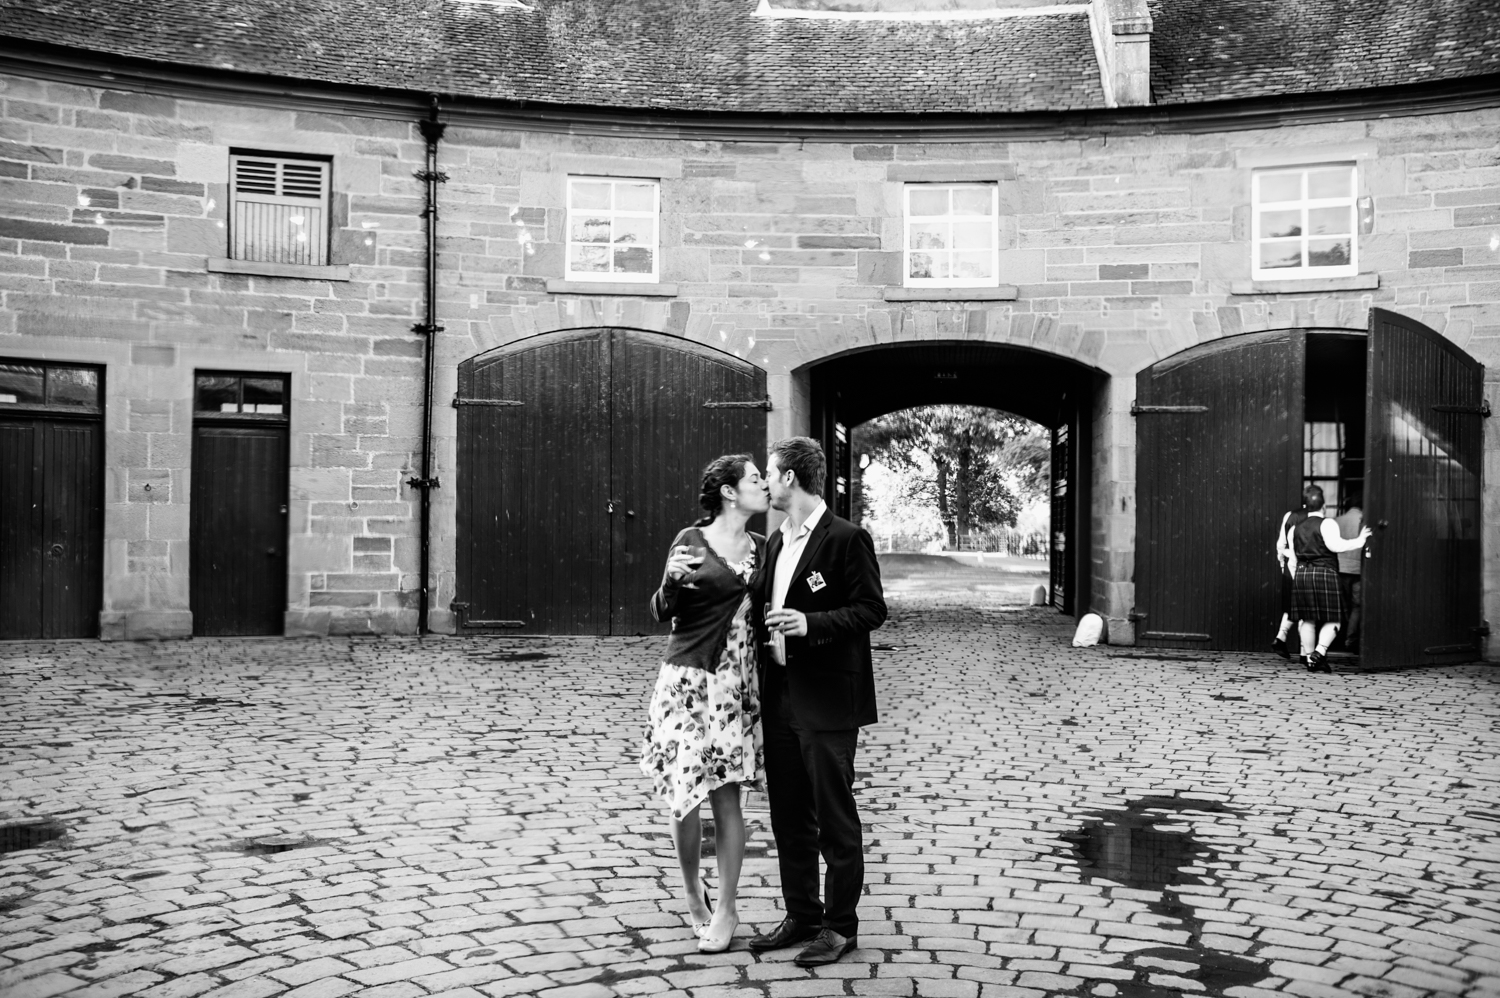 134-lisa-devine-photography-alternative-creative-wedding-photography-glasgow-errol-park-perthshire-scotland-uk.JPG